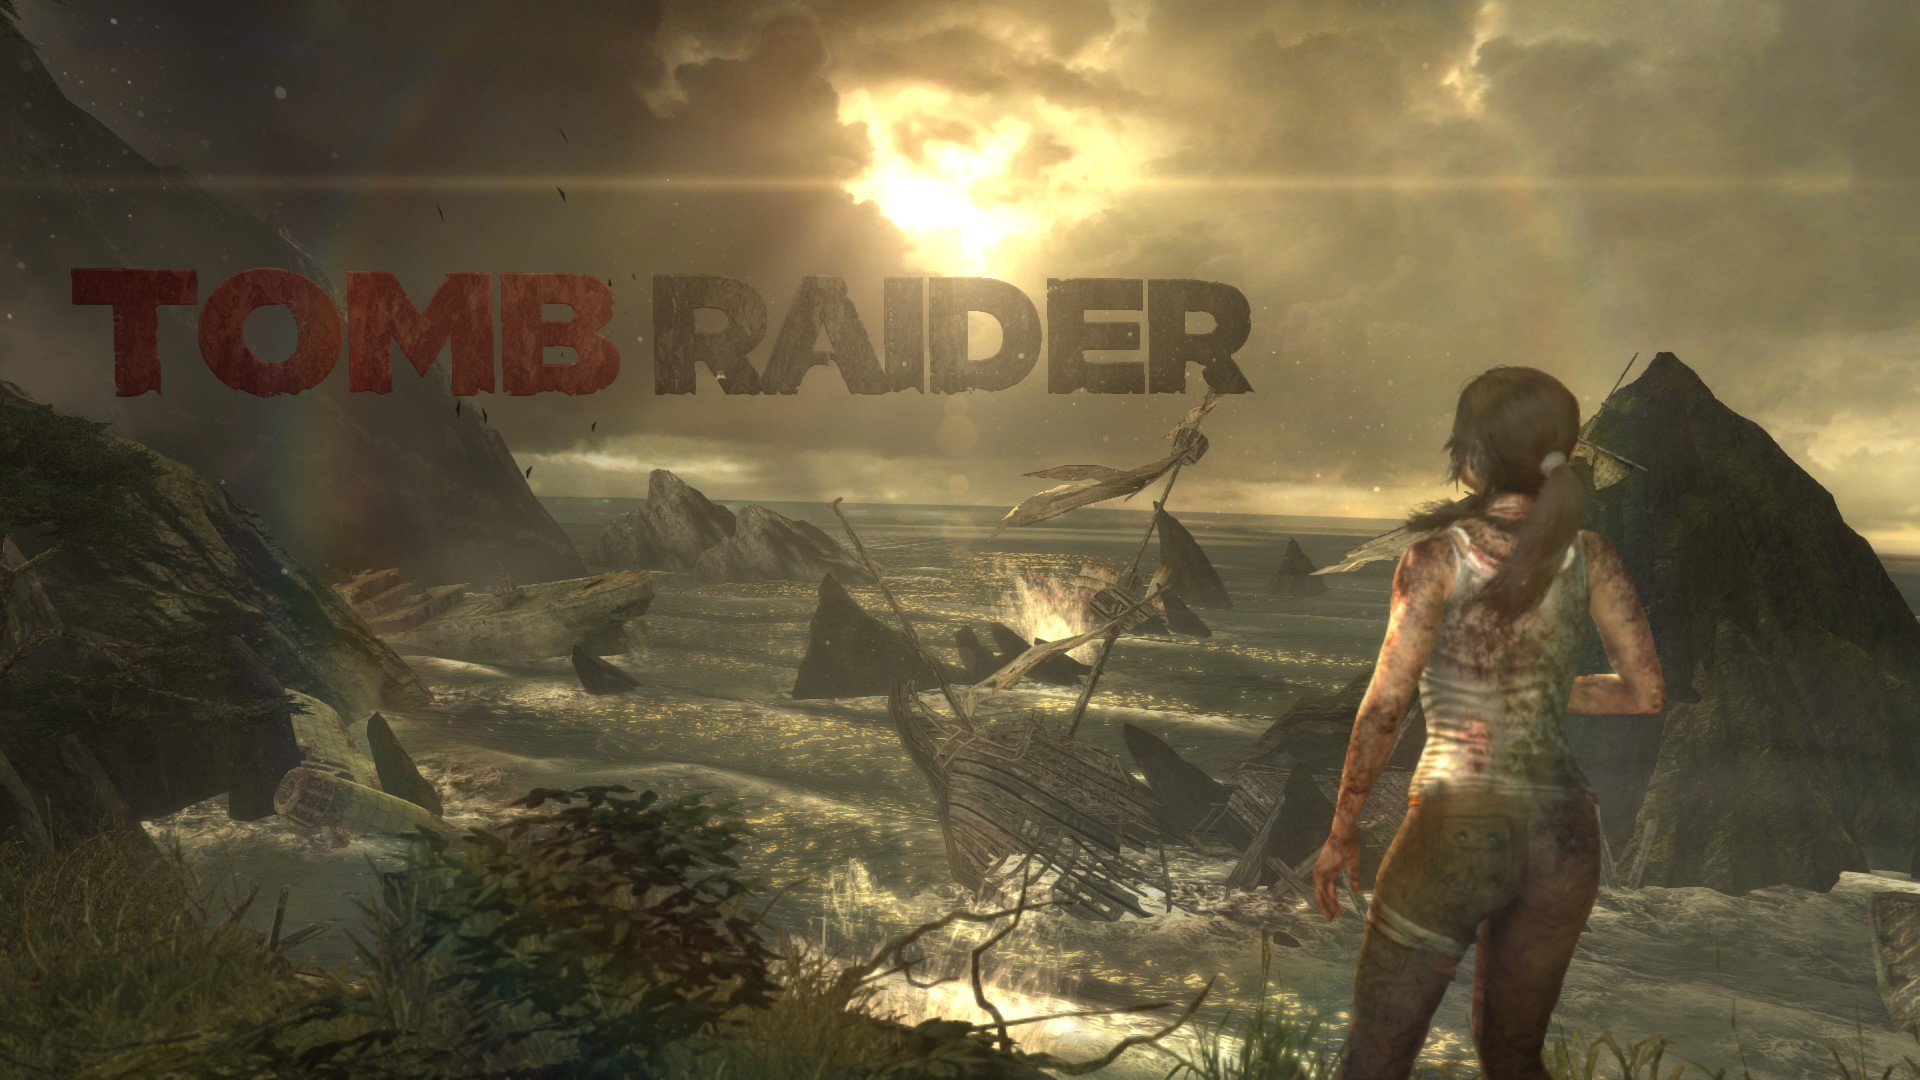 Download Hd 1080p Tomb Raider 2013 Desktop Background Id 375499 For Free